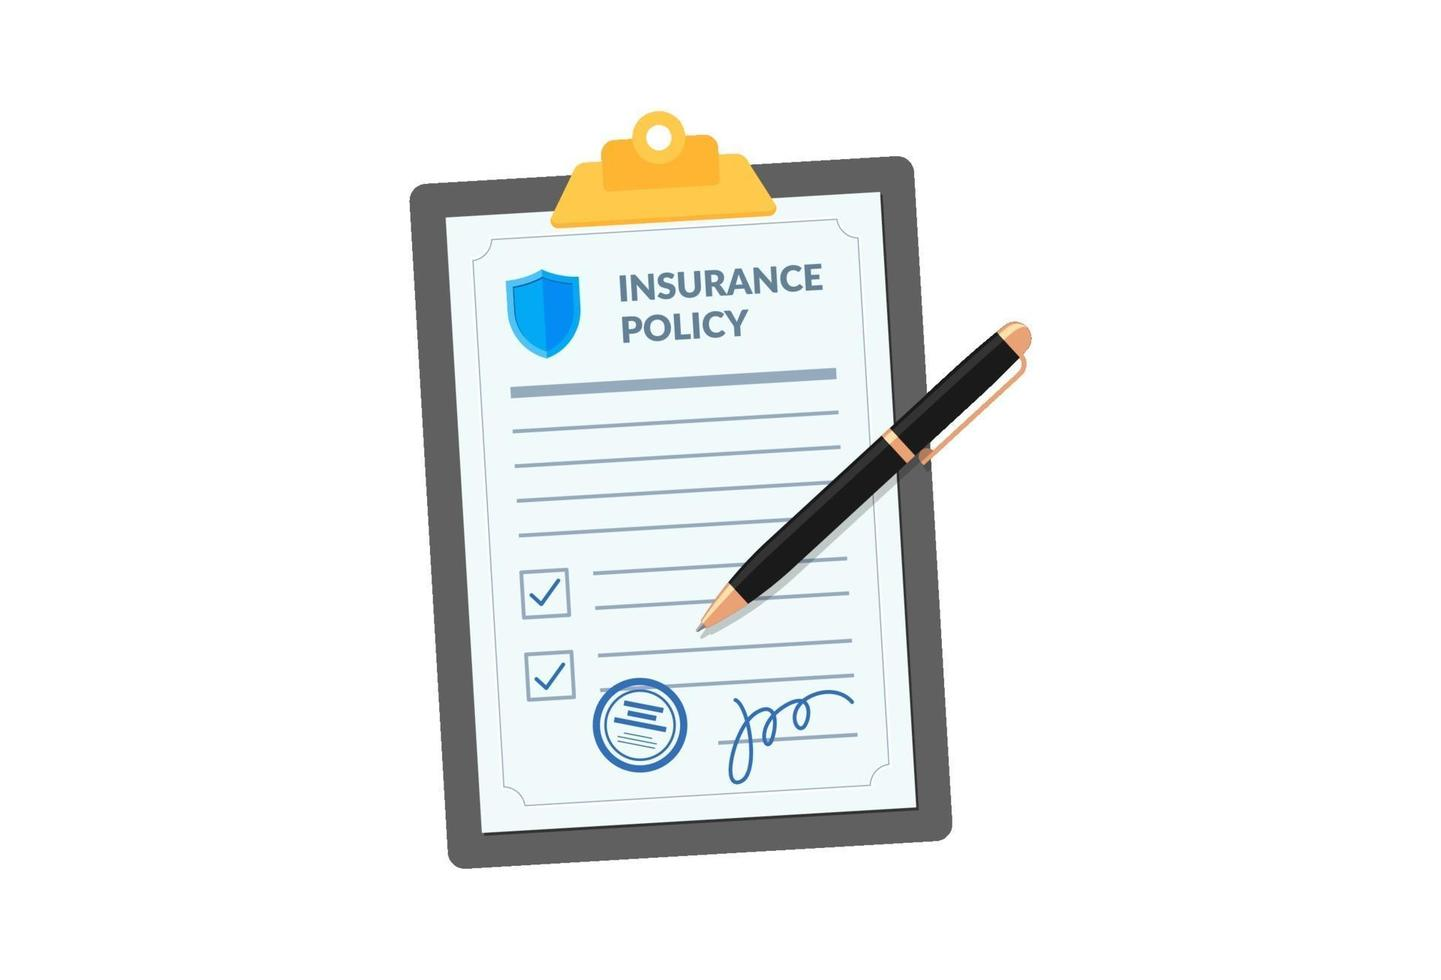 Insurance policy on clipboard with pen isolated on white background. Company agreement contract document check list with signature on board. Injury risk law legal preparedness vector illustration